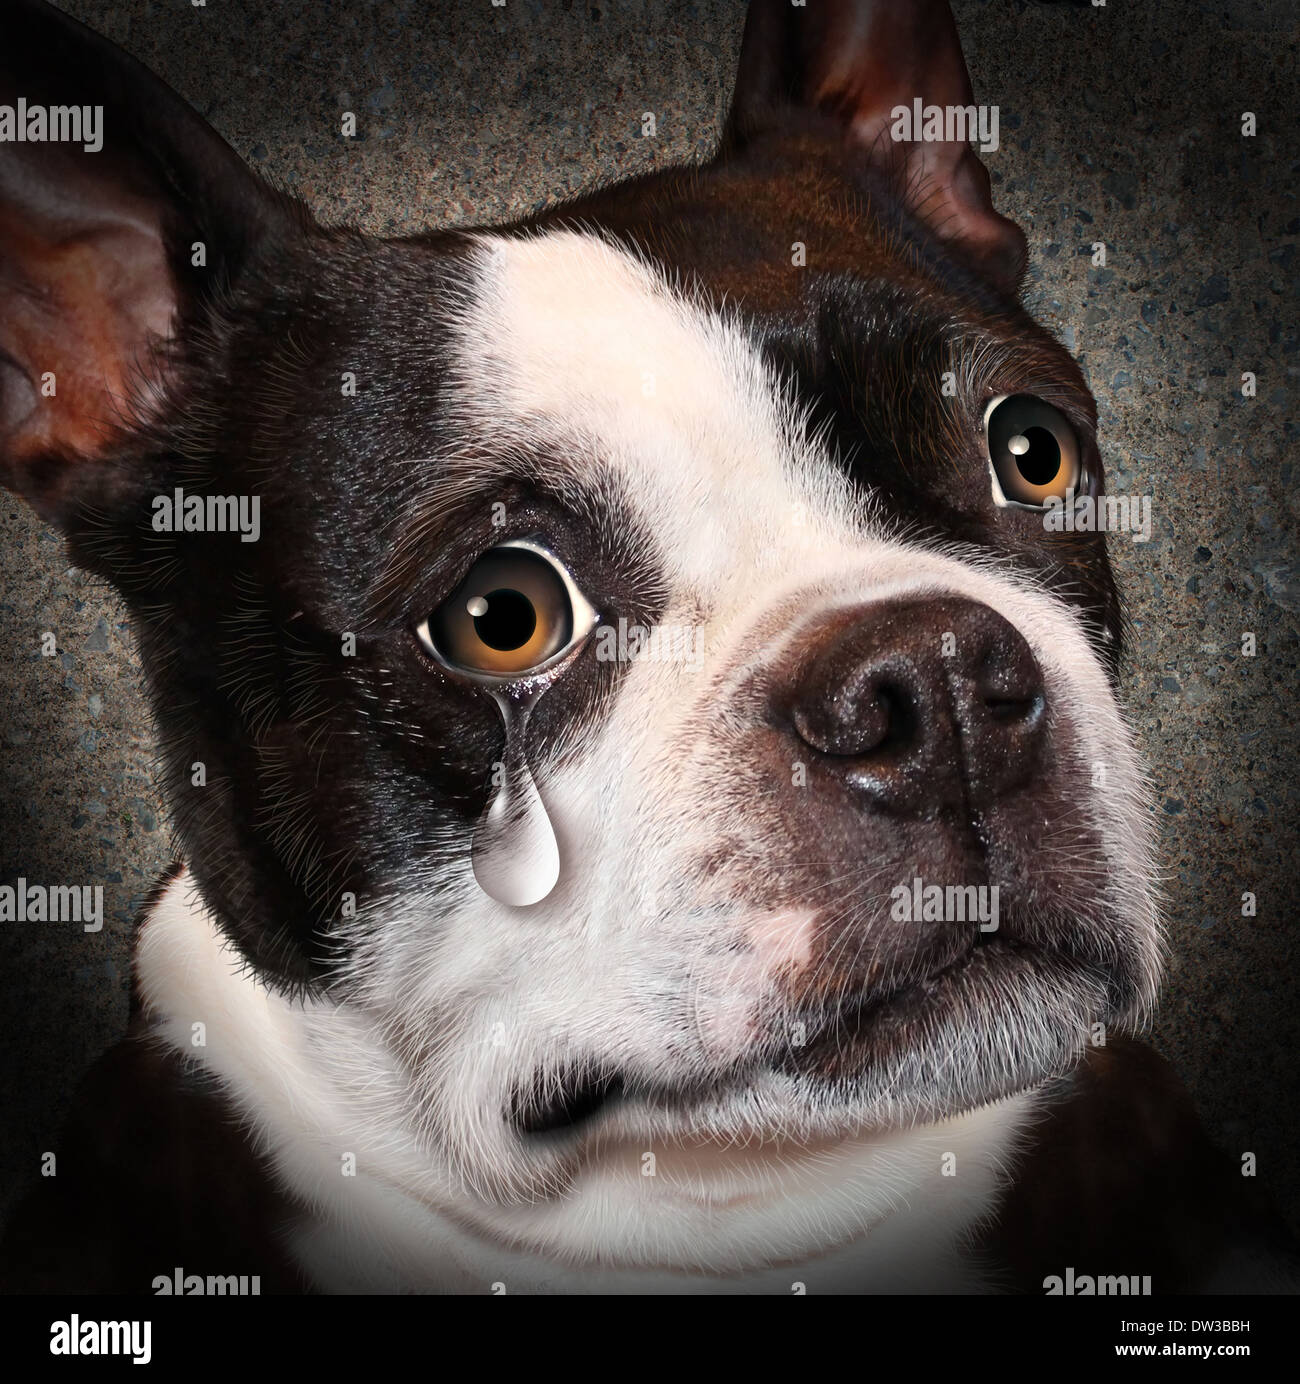 Lost pet animal cruelty and neglect concept with a sad crying dog looking at the viewer with a tear of despair as Stock Photo